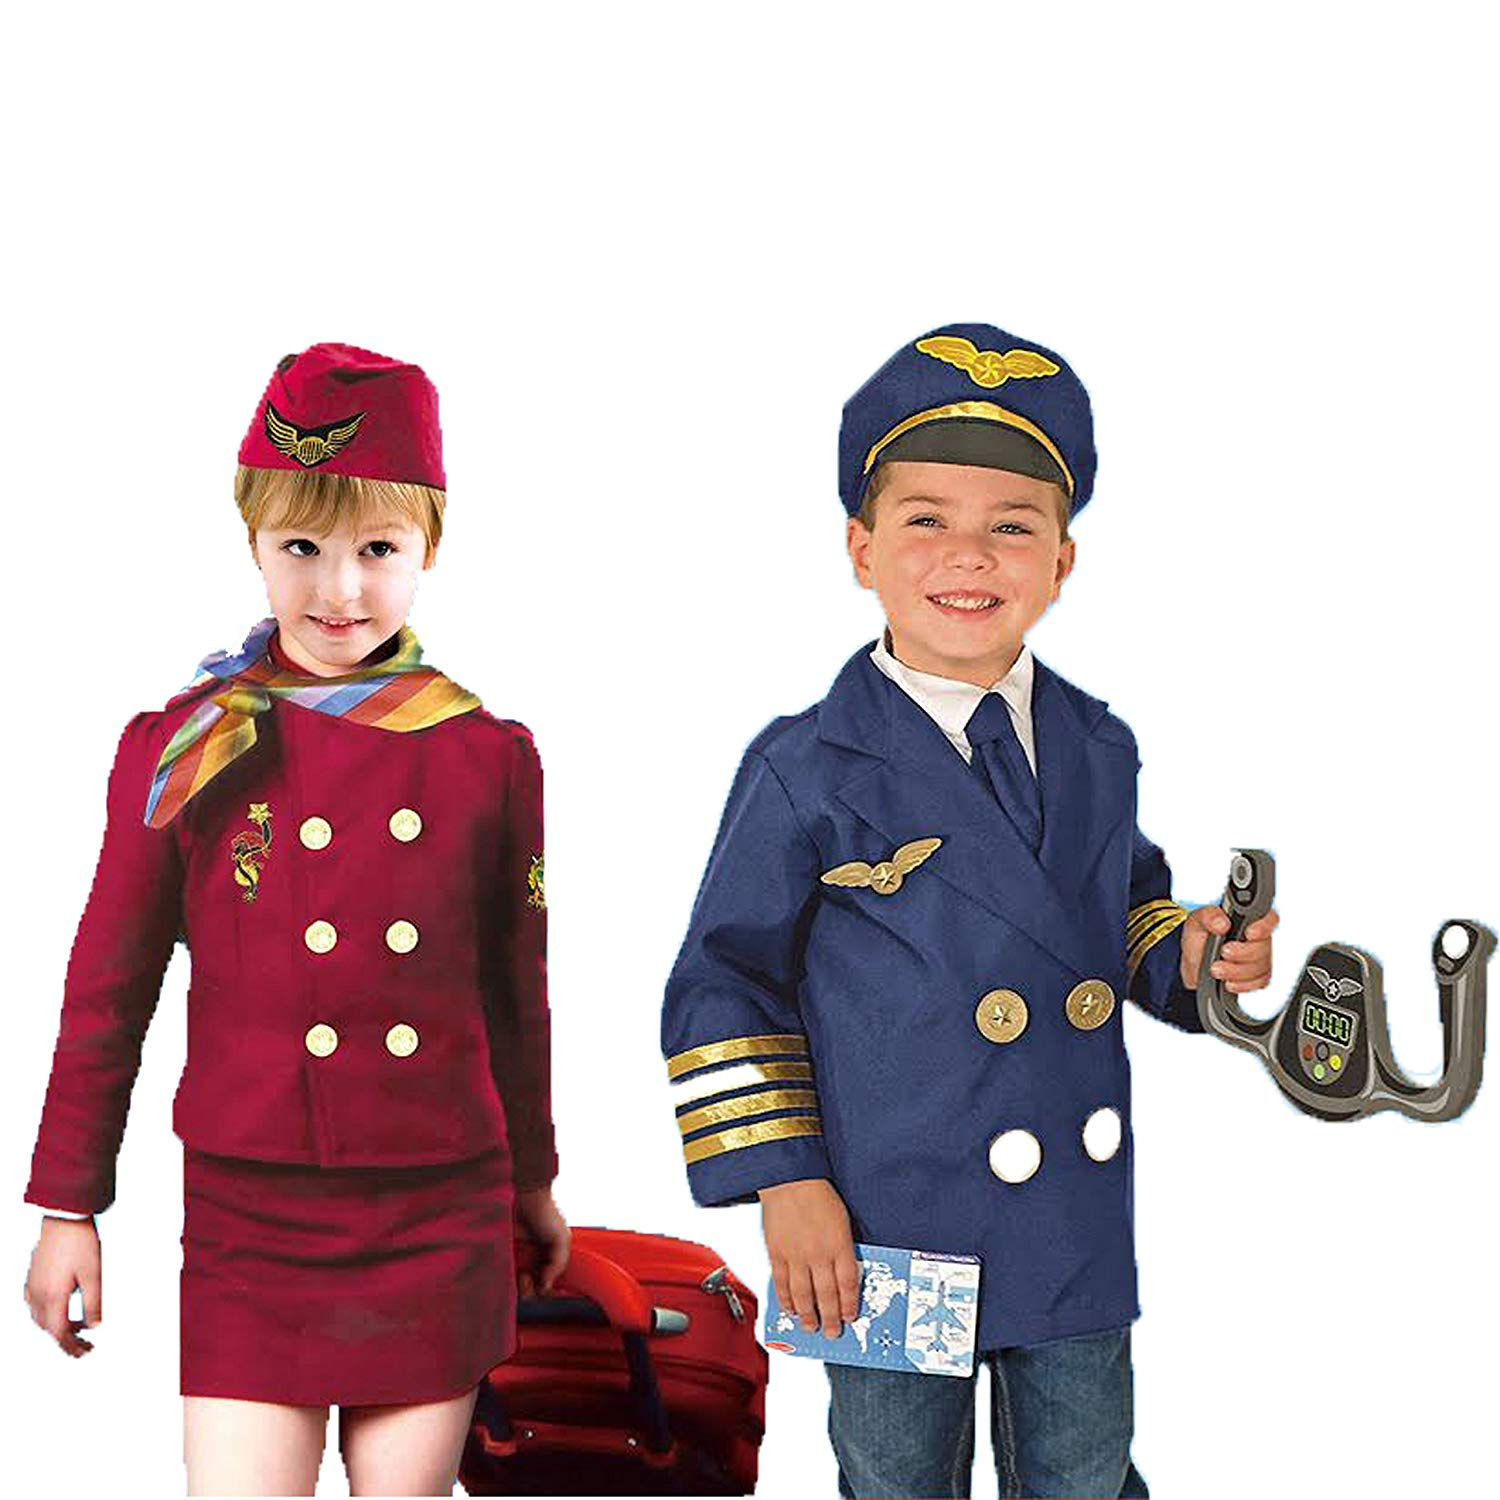 Set of 2 Dress up Costumes 1 Pilot 2 Flight Attendant, with hats and accessories